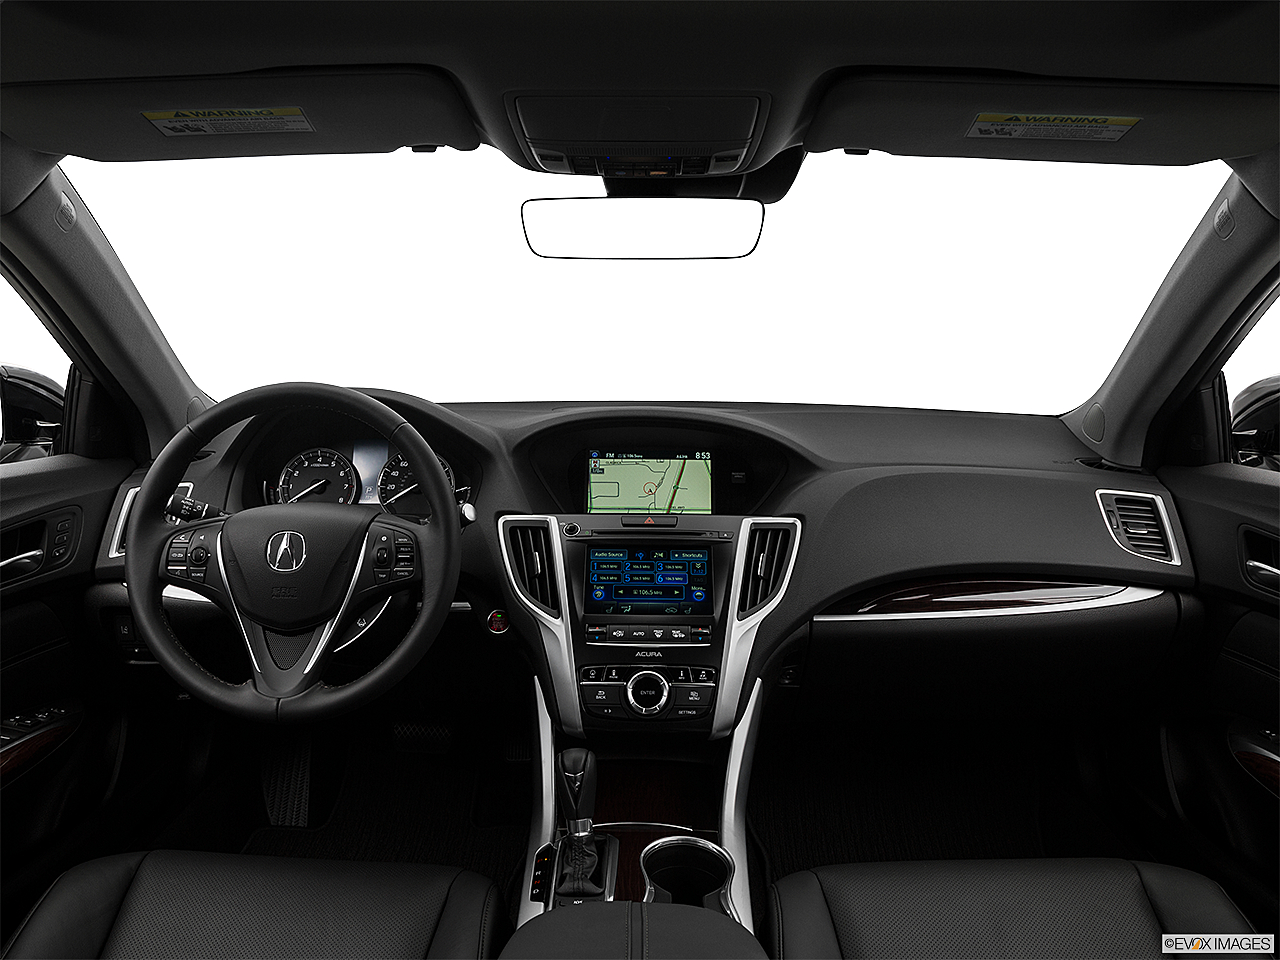 2017 Acura TLX 2.4 8-DCP P-AWS, centered wide dash shot